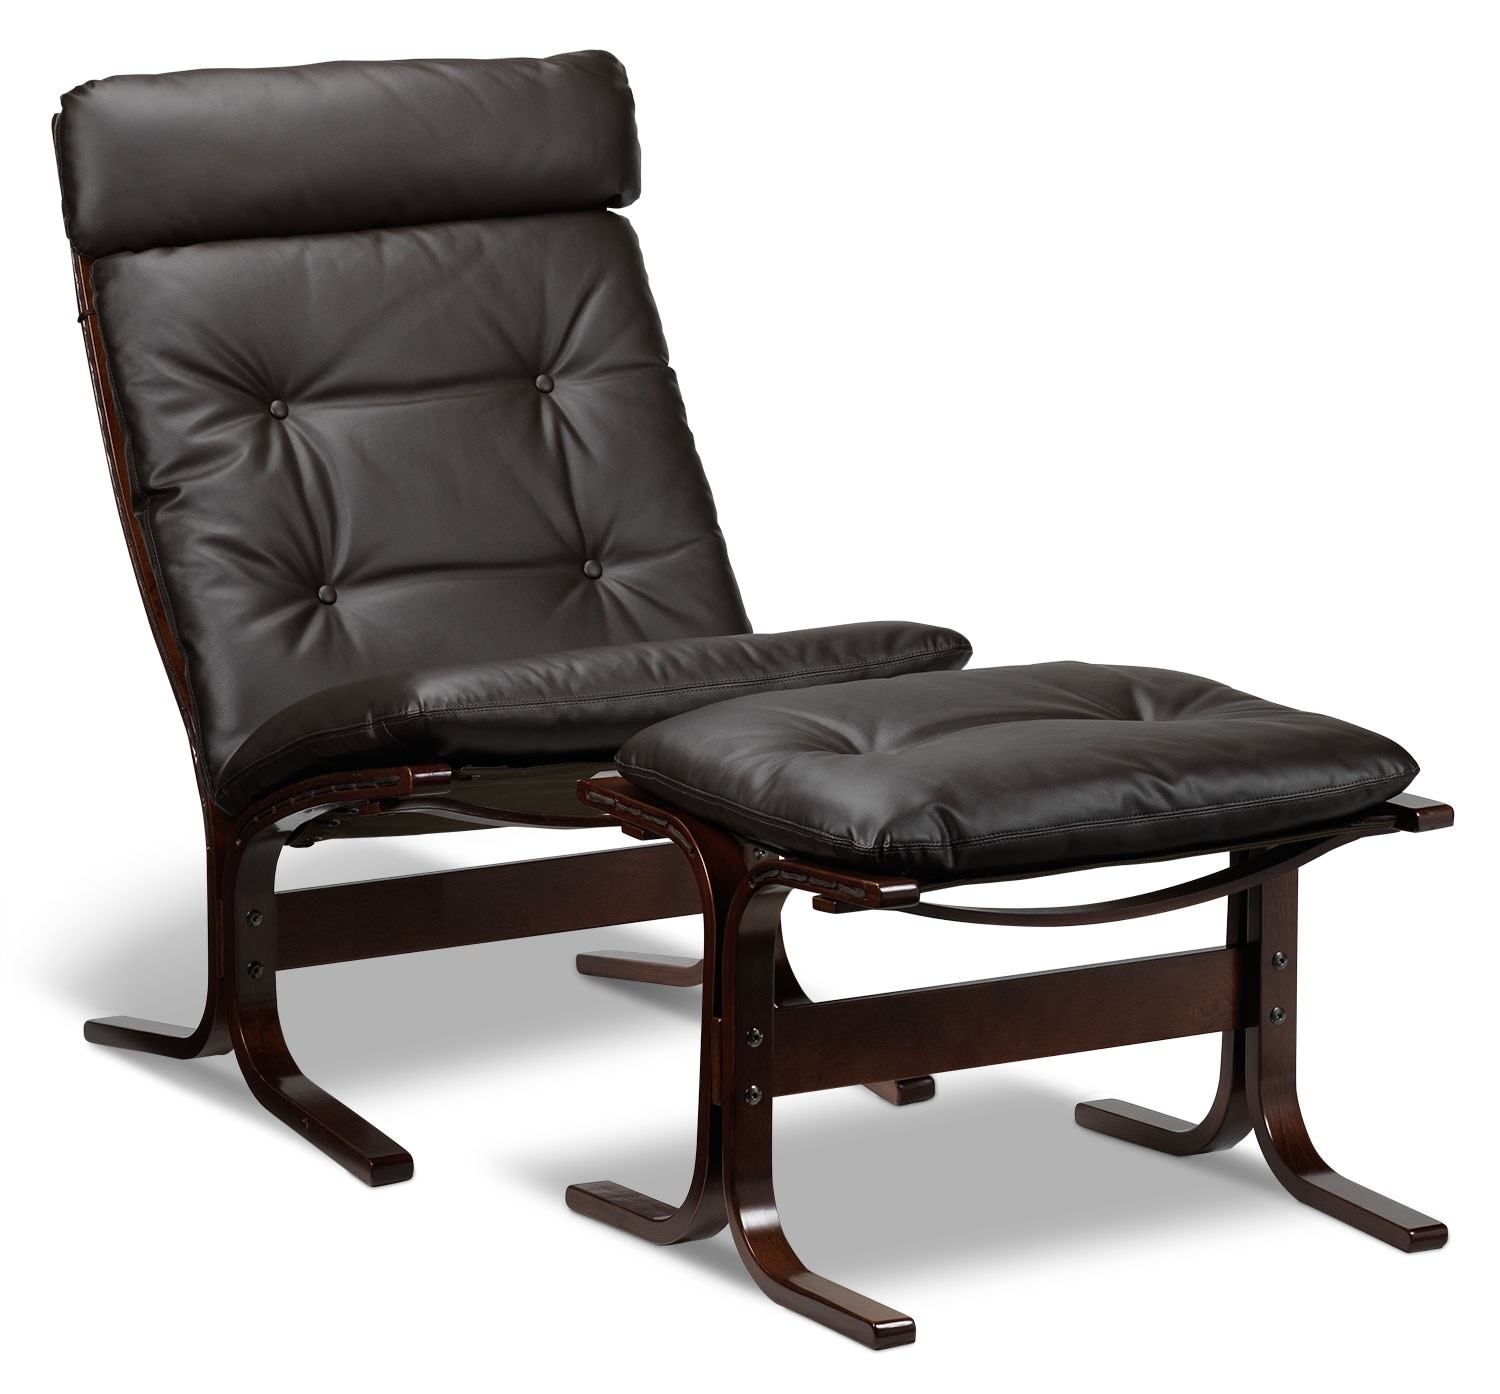 Living Room Furniture - Carey Chair and Ottoman - Espresso